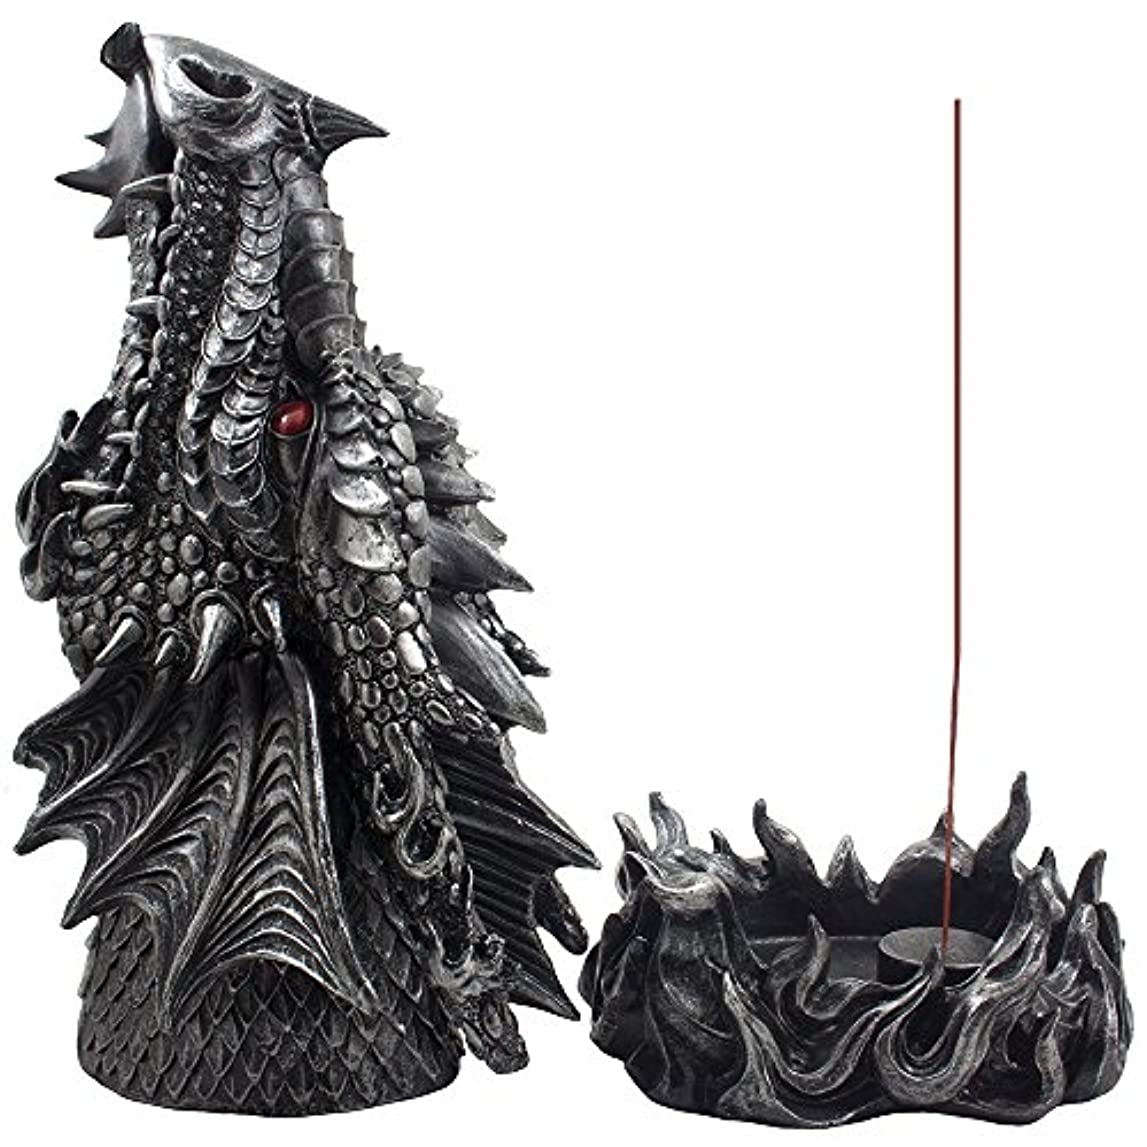 ヤギデクリメント積分Mythical Fire Breathing Dragon Incense Holder & Burner Combo Statue for Sticks or Cones with Decorative Display Stand of Flames As Gothic Home Decor Aromatherapy Sculptures and Mediaeval Fantasy Gifts